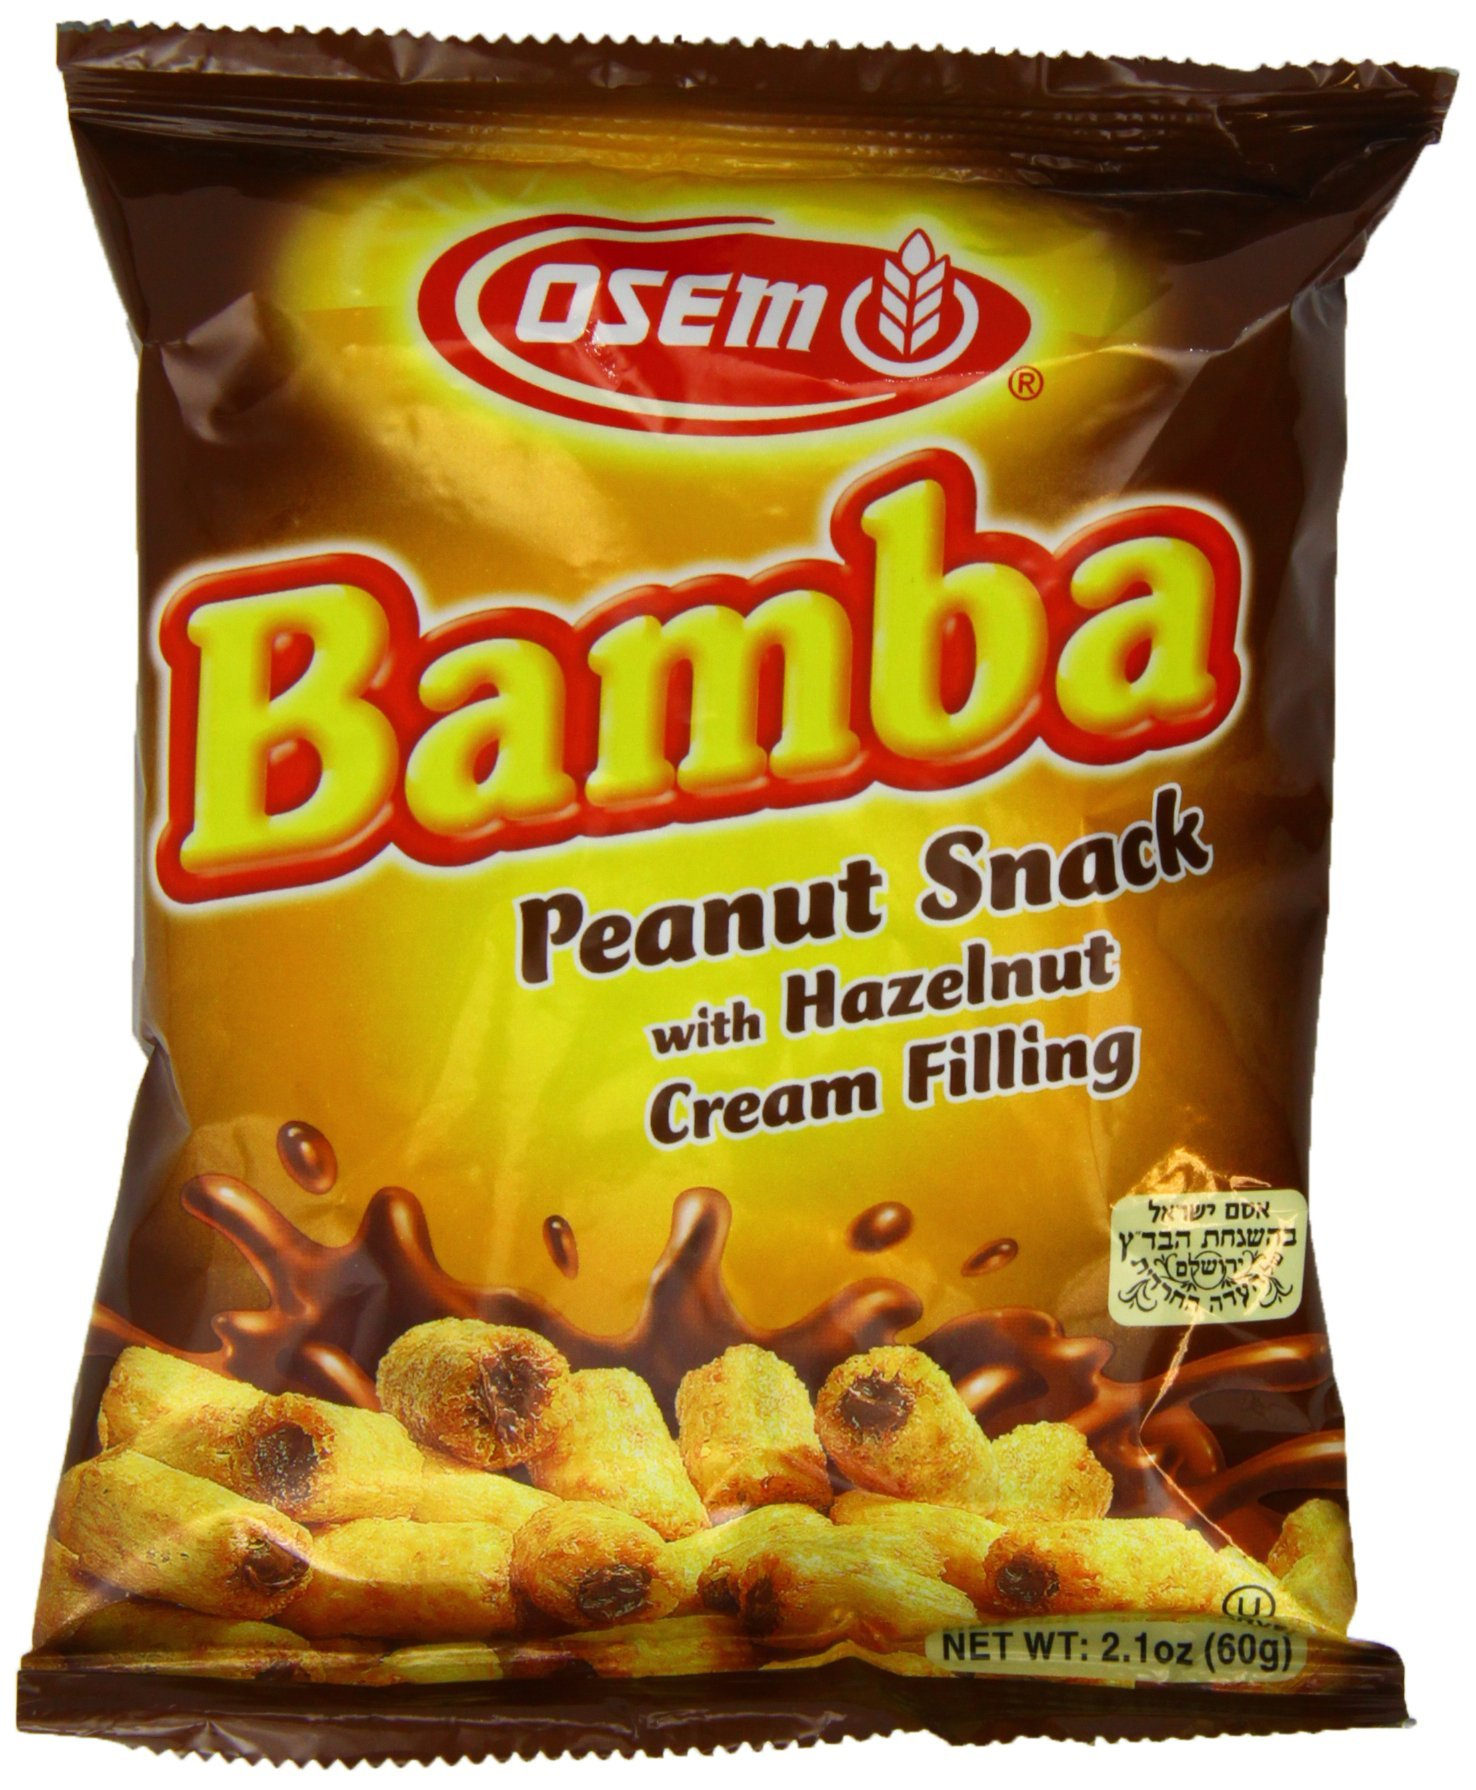 Bamba Hazelnut Cream Peanut Butter Snacks All Natural Peanut Butter PB Corn Puffs, 2.1oz Bag (Pack of 3)